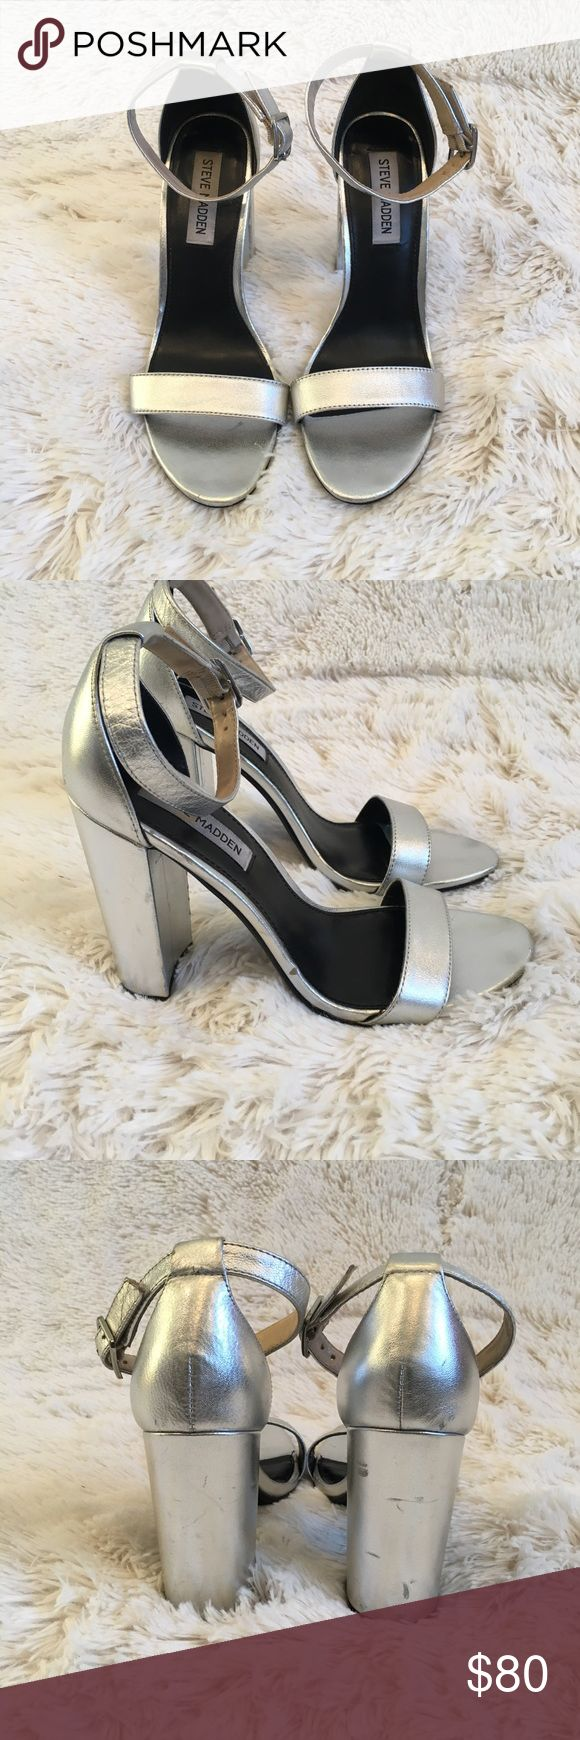 Steve Madden Silver Block Heels Good condition. Shoes have many skuffs in heels and sides  (shown in photo) please make sure to look closely at photos.  Heel height 4 1/4 inches Steve Madden Shoes Heels